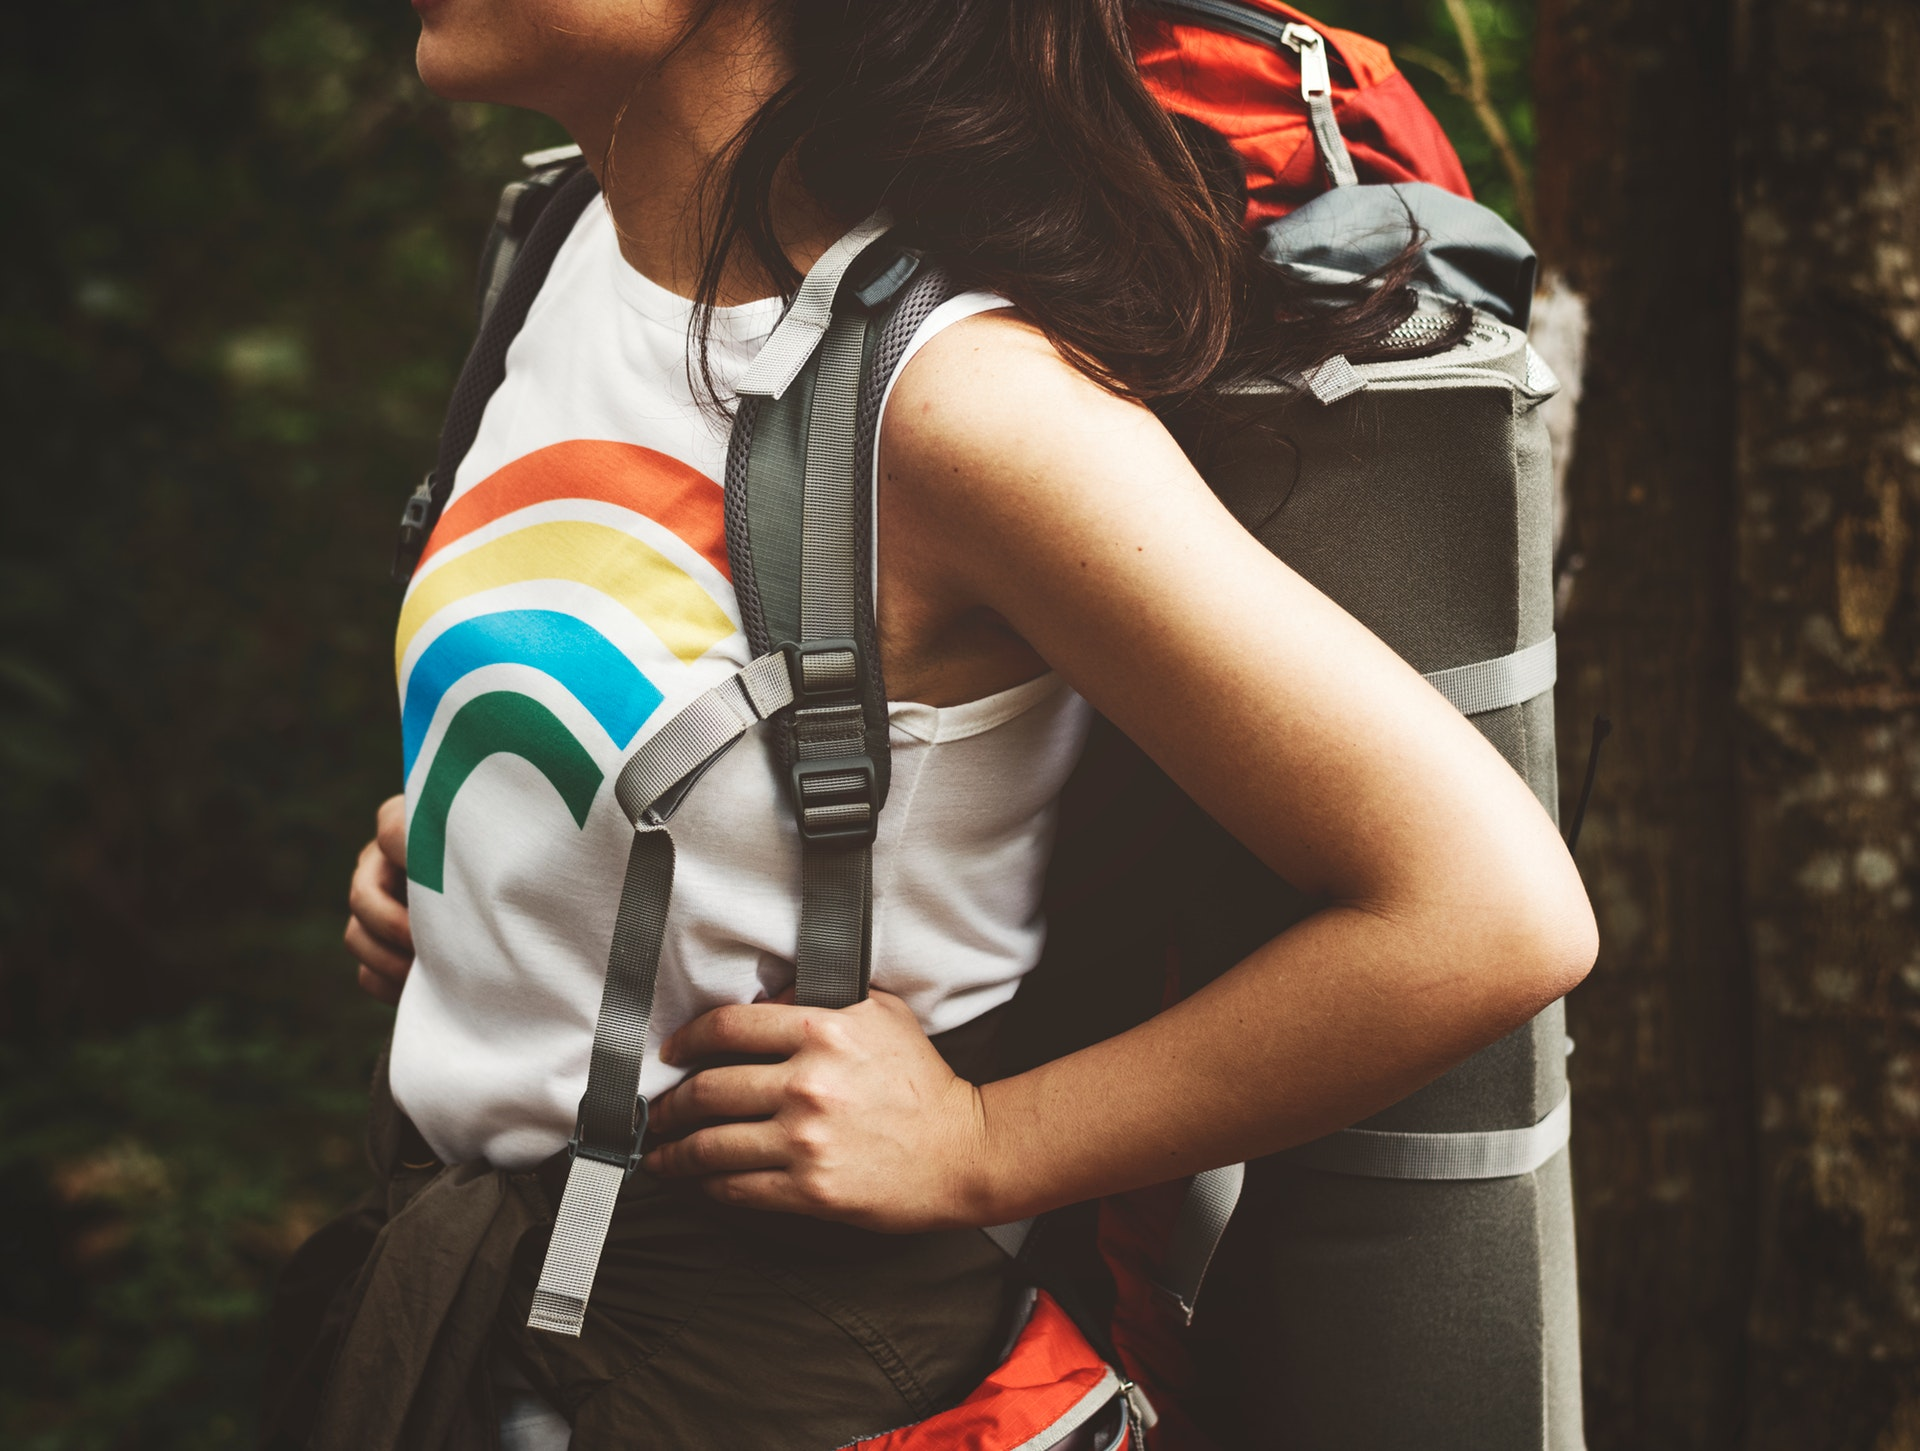 Eco friendly Travel Gear That Doesn't Cost the Earth